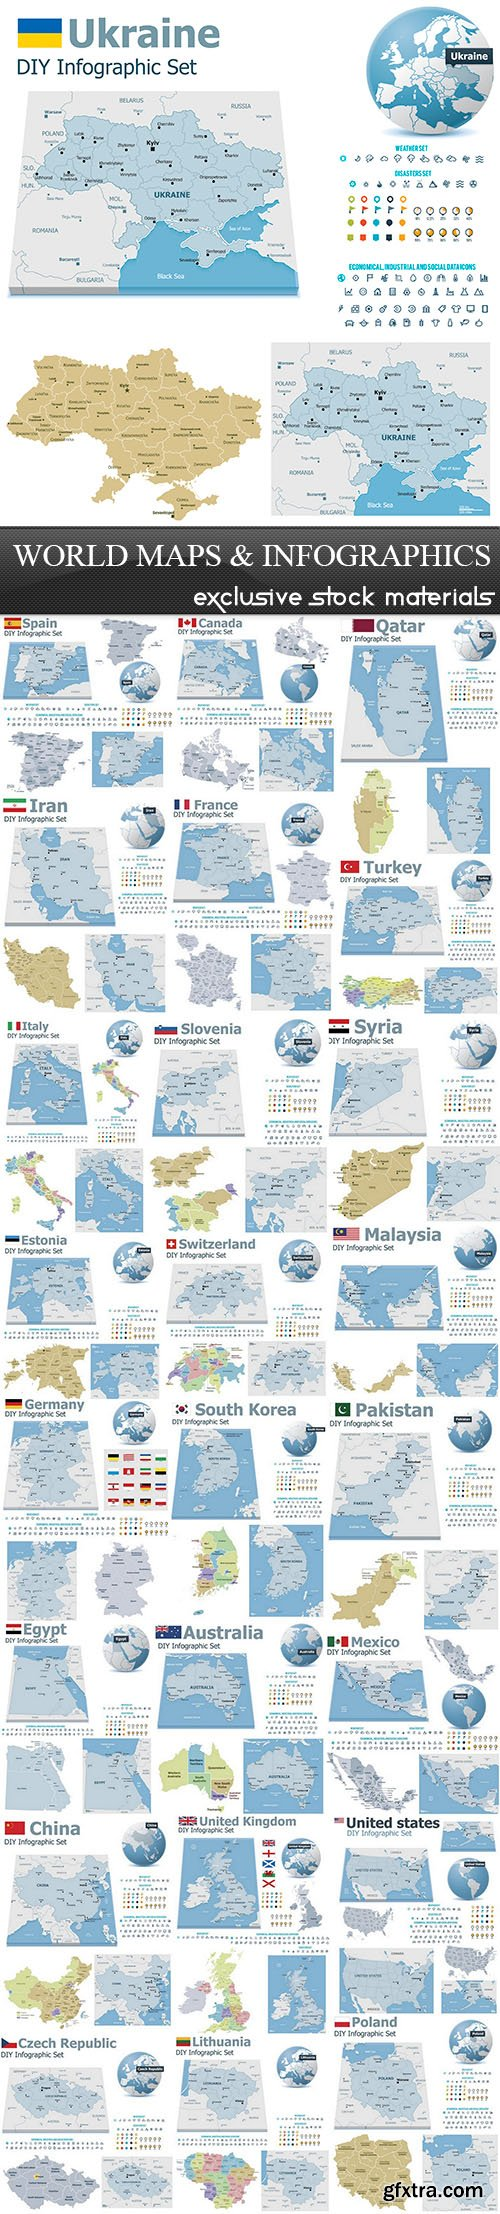 Maps page 4 vector photoshop psdafter effects tutorials 25xeps preview 260 mb gumiabroncs Images